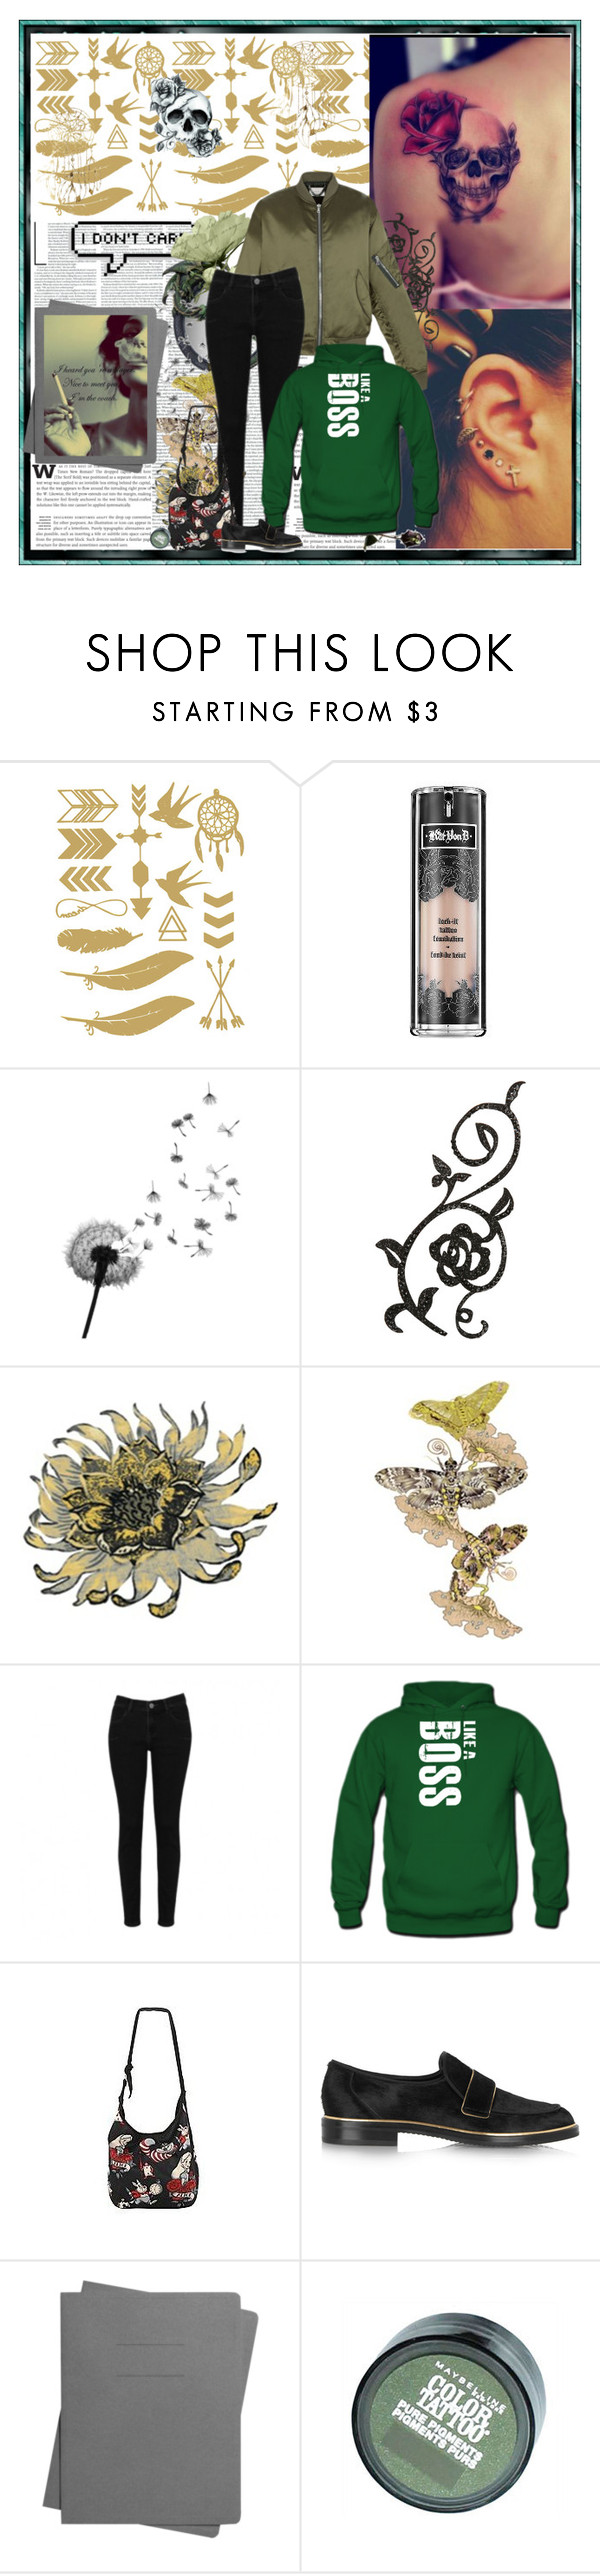 """""""Like a boss"""" by valc5 ❤ liked on Polyvore featuring Kat Von D, MARBELLA, Disney, Casadei, Shinola and Maybelline"""